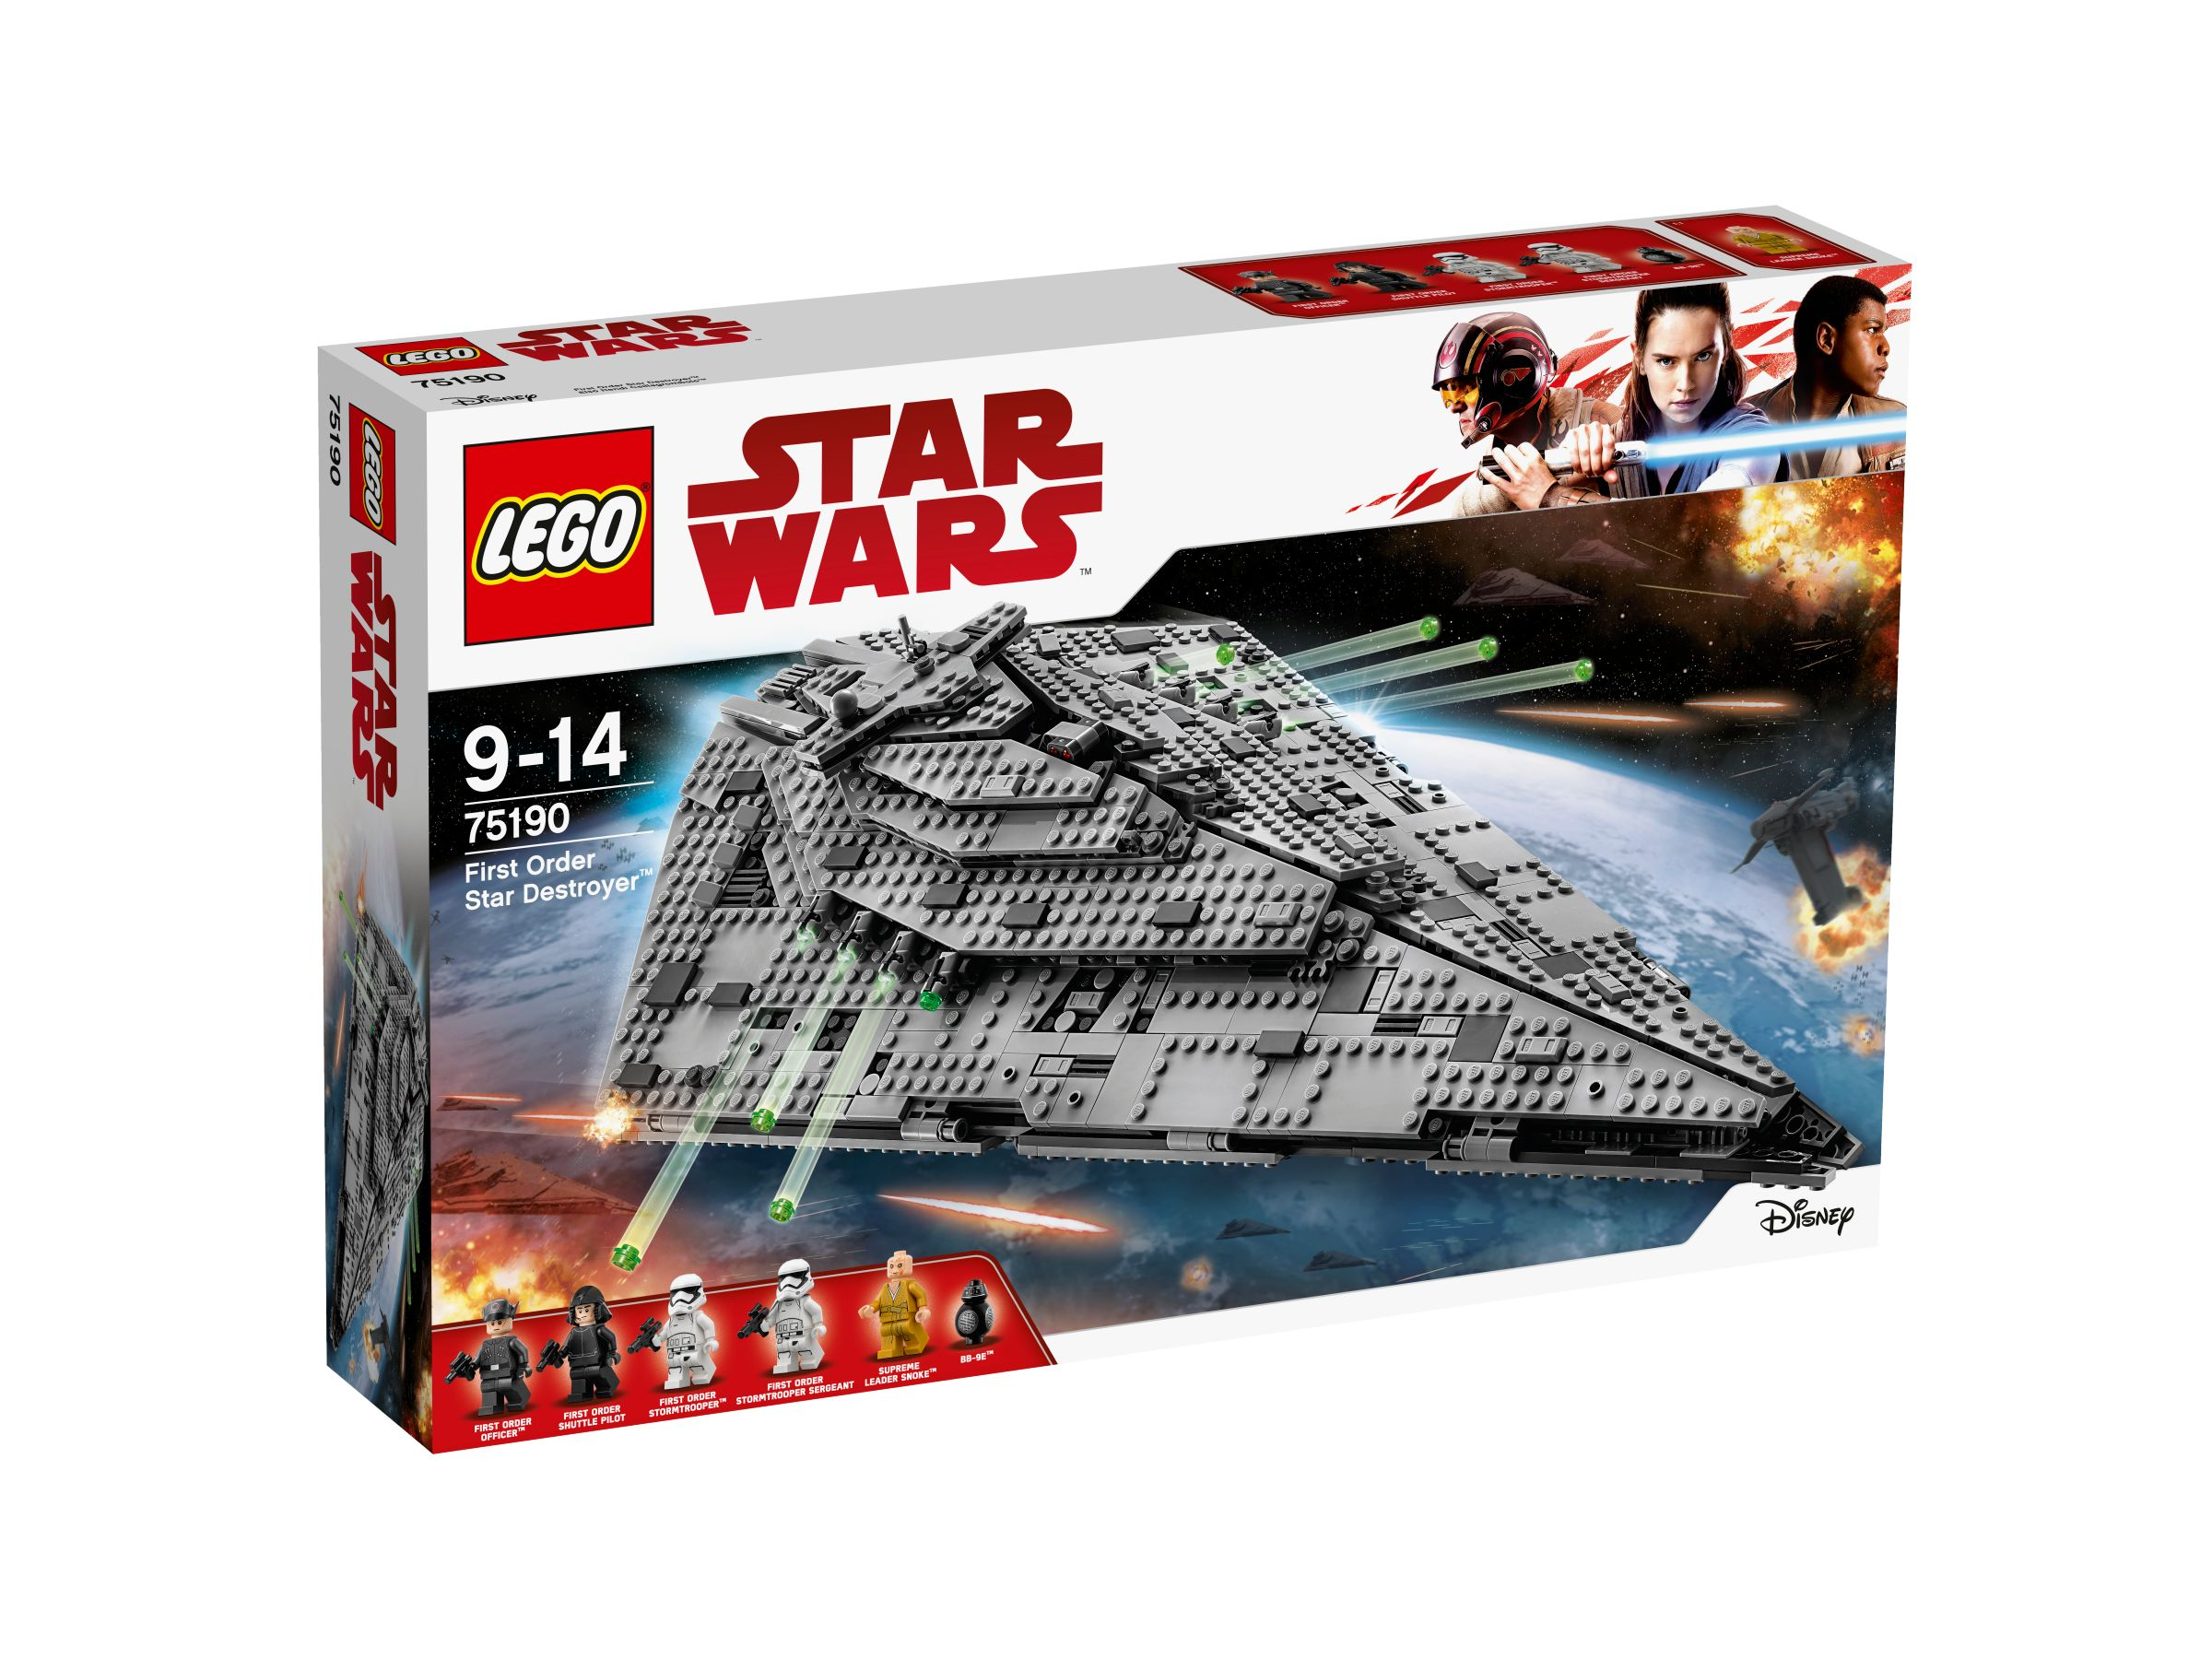 LEGO Star Wars 75190 First Order Star Destroyer™ LEGO_75190_alt1.jpg